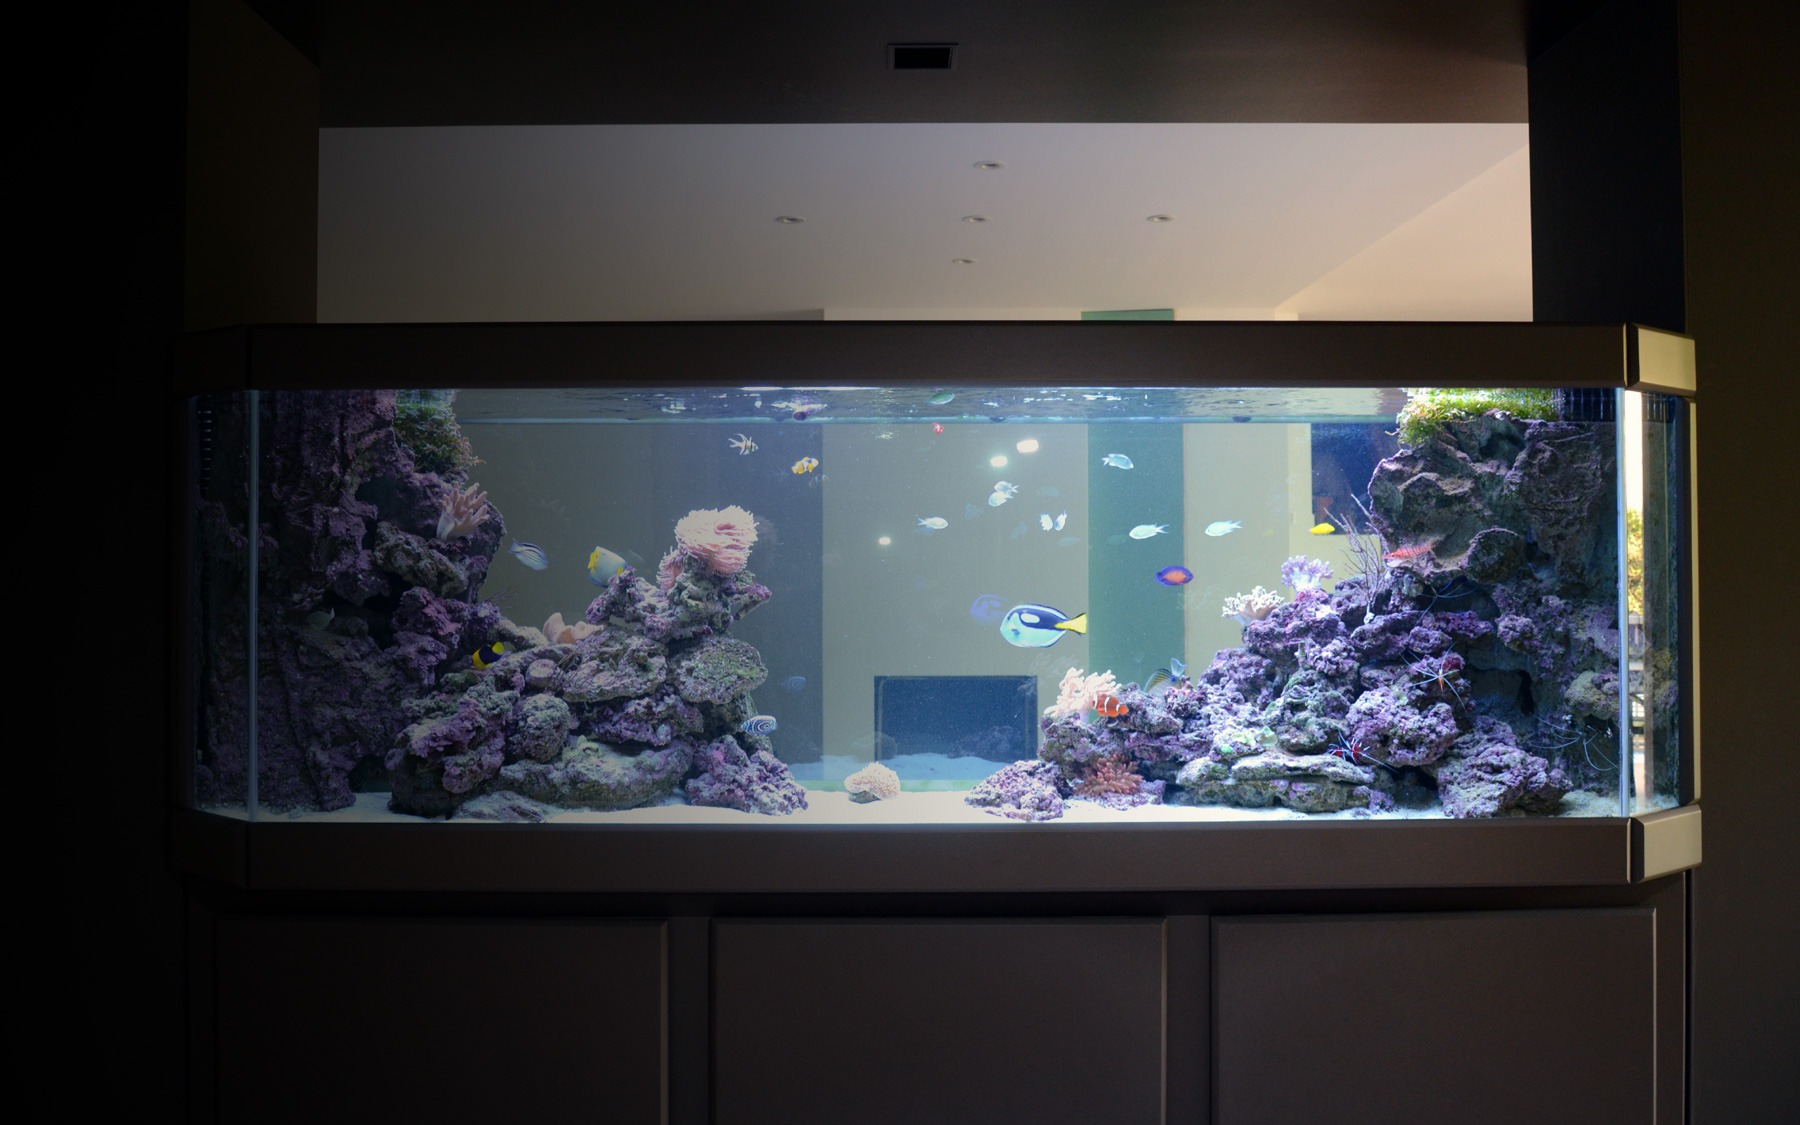 Aquarium sur mesure en s paration oc an d 39 interieur for Aquarium interieur